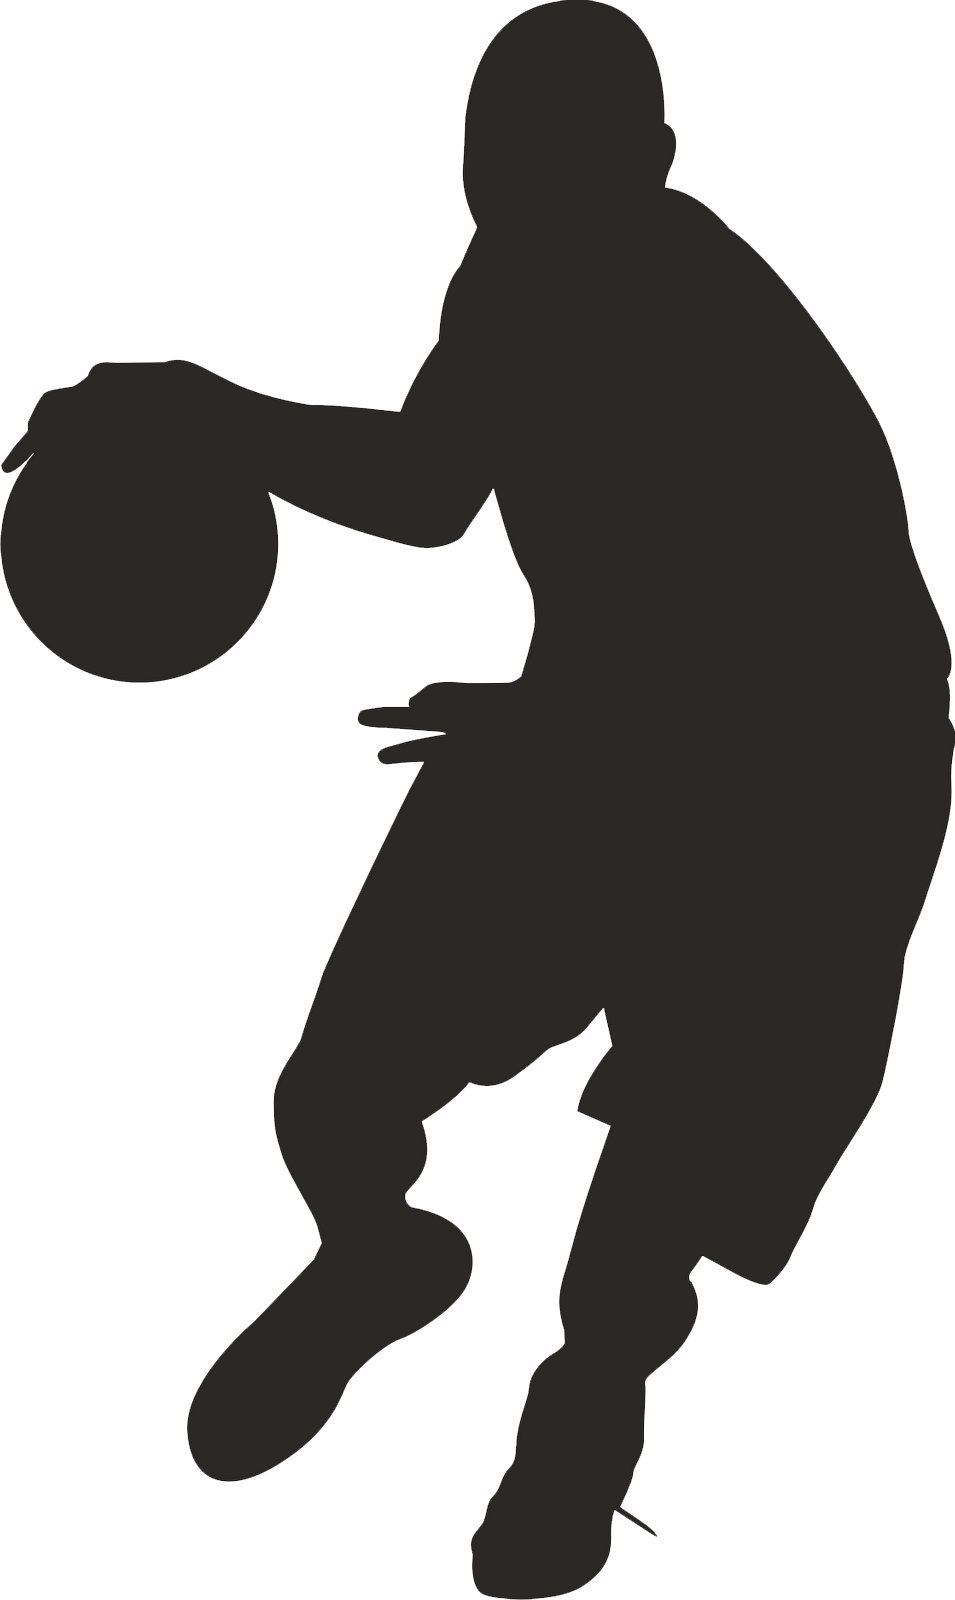 Basketball player black and white clipart svg royalty free download Silhouette Basketball Players at GetDrawings.com | Free for personal ... svg royalty free download